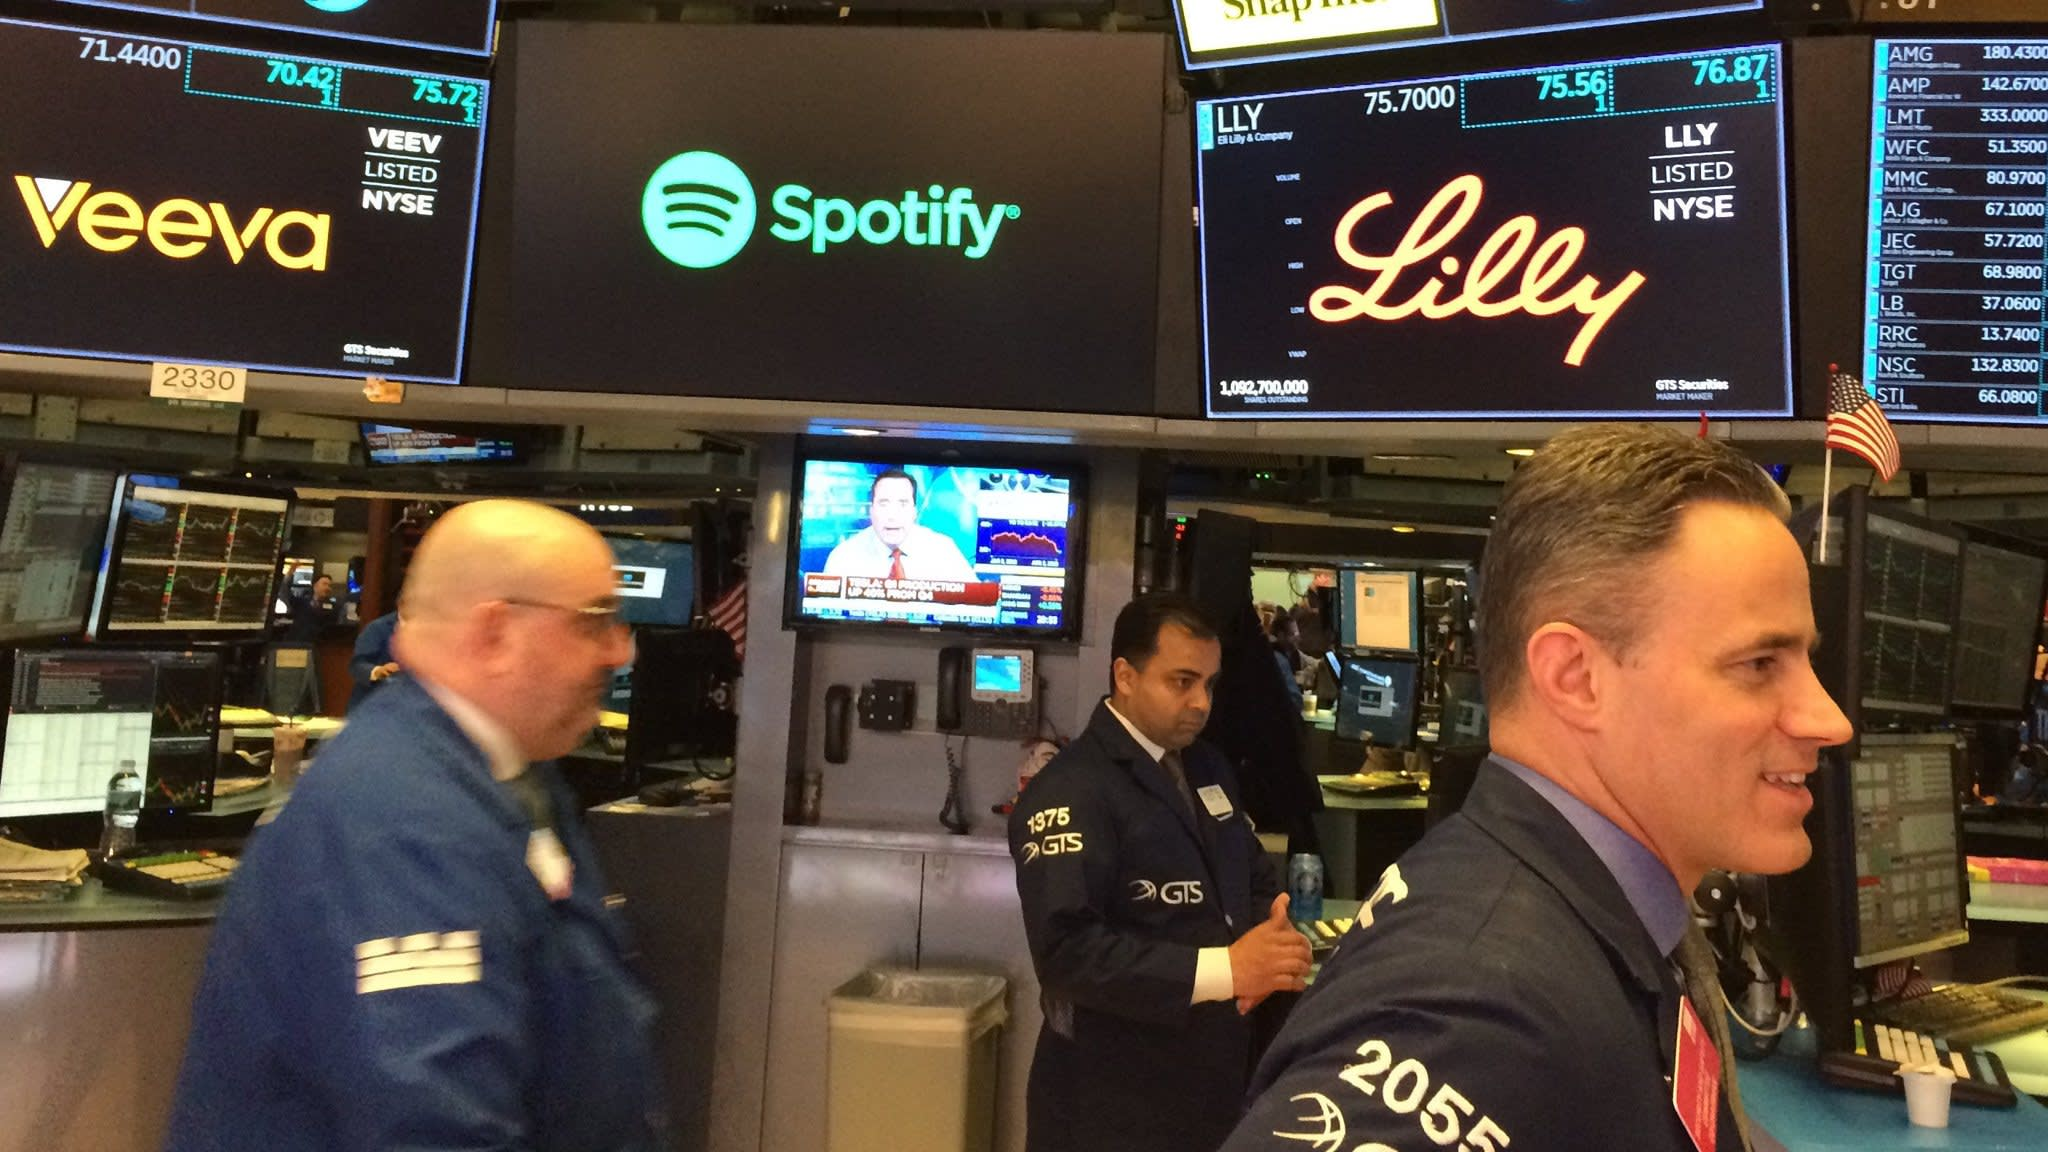 Spotify starting point puts valuation at $23.5bn